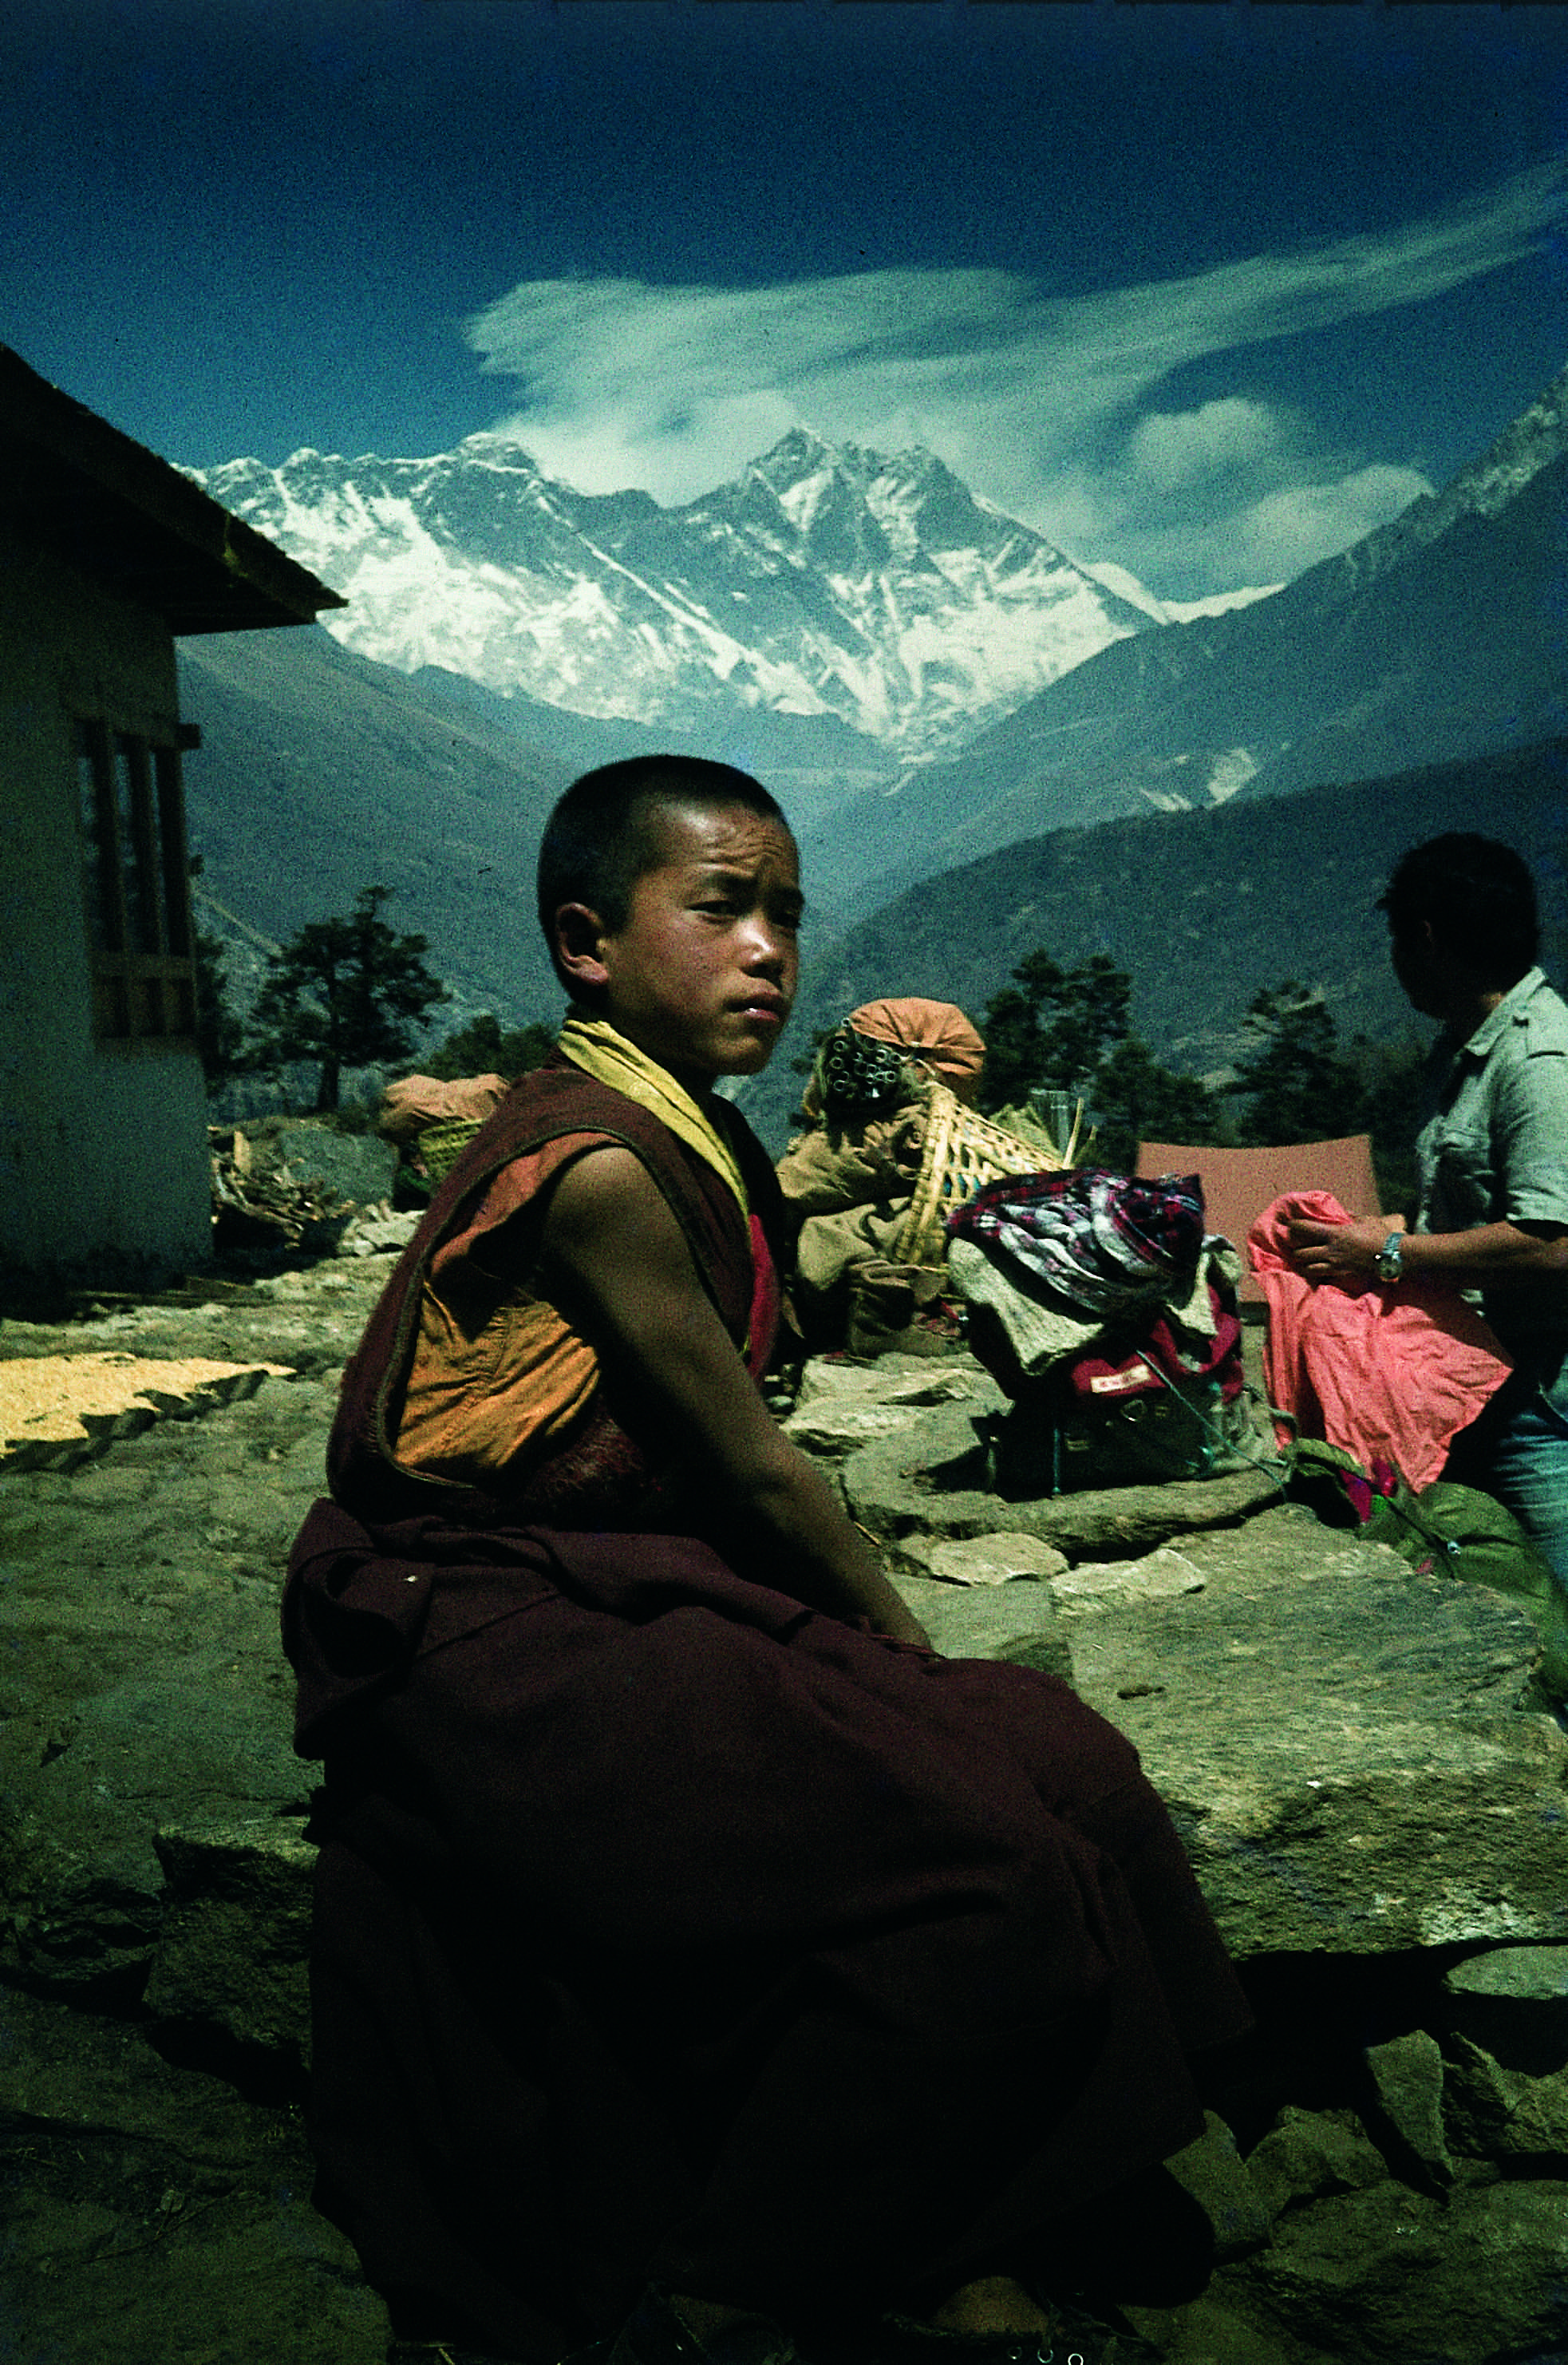 Buddhist boy in Thangboche monastery with Mount Everest in the background